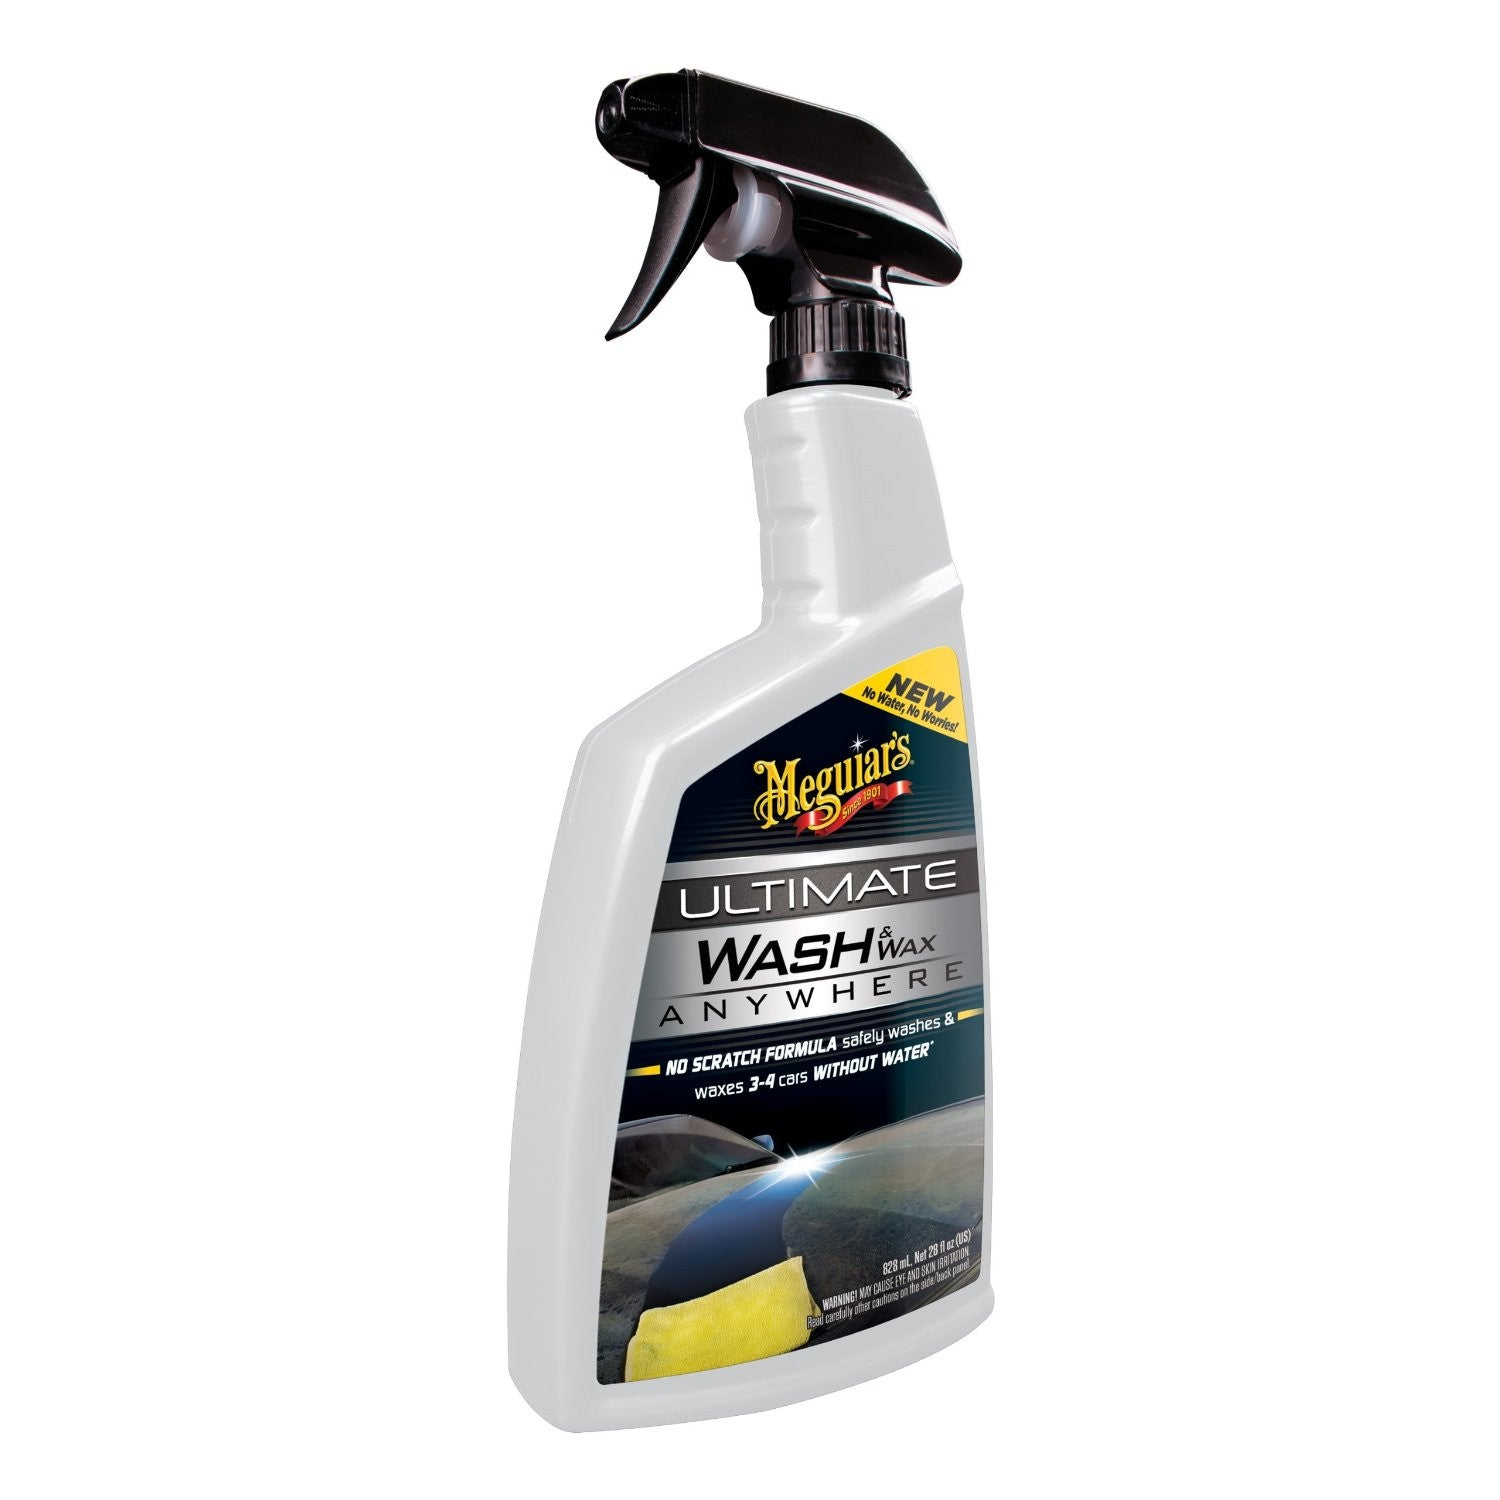 Meguiar's Ultimate Wash & Wax Anywhere Spray